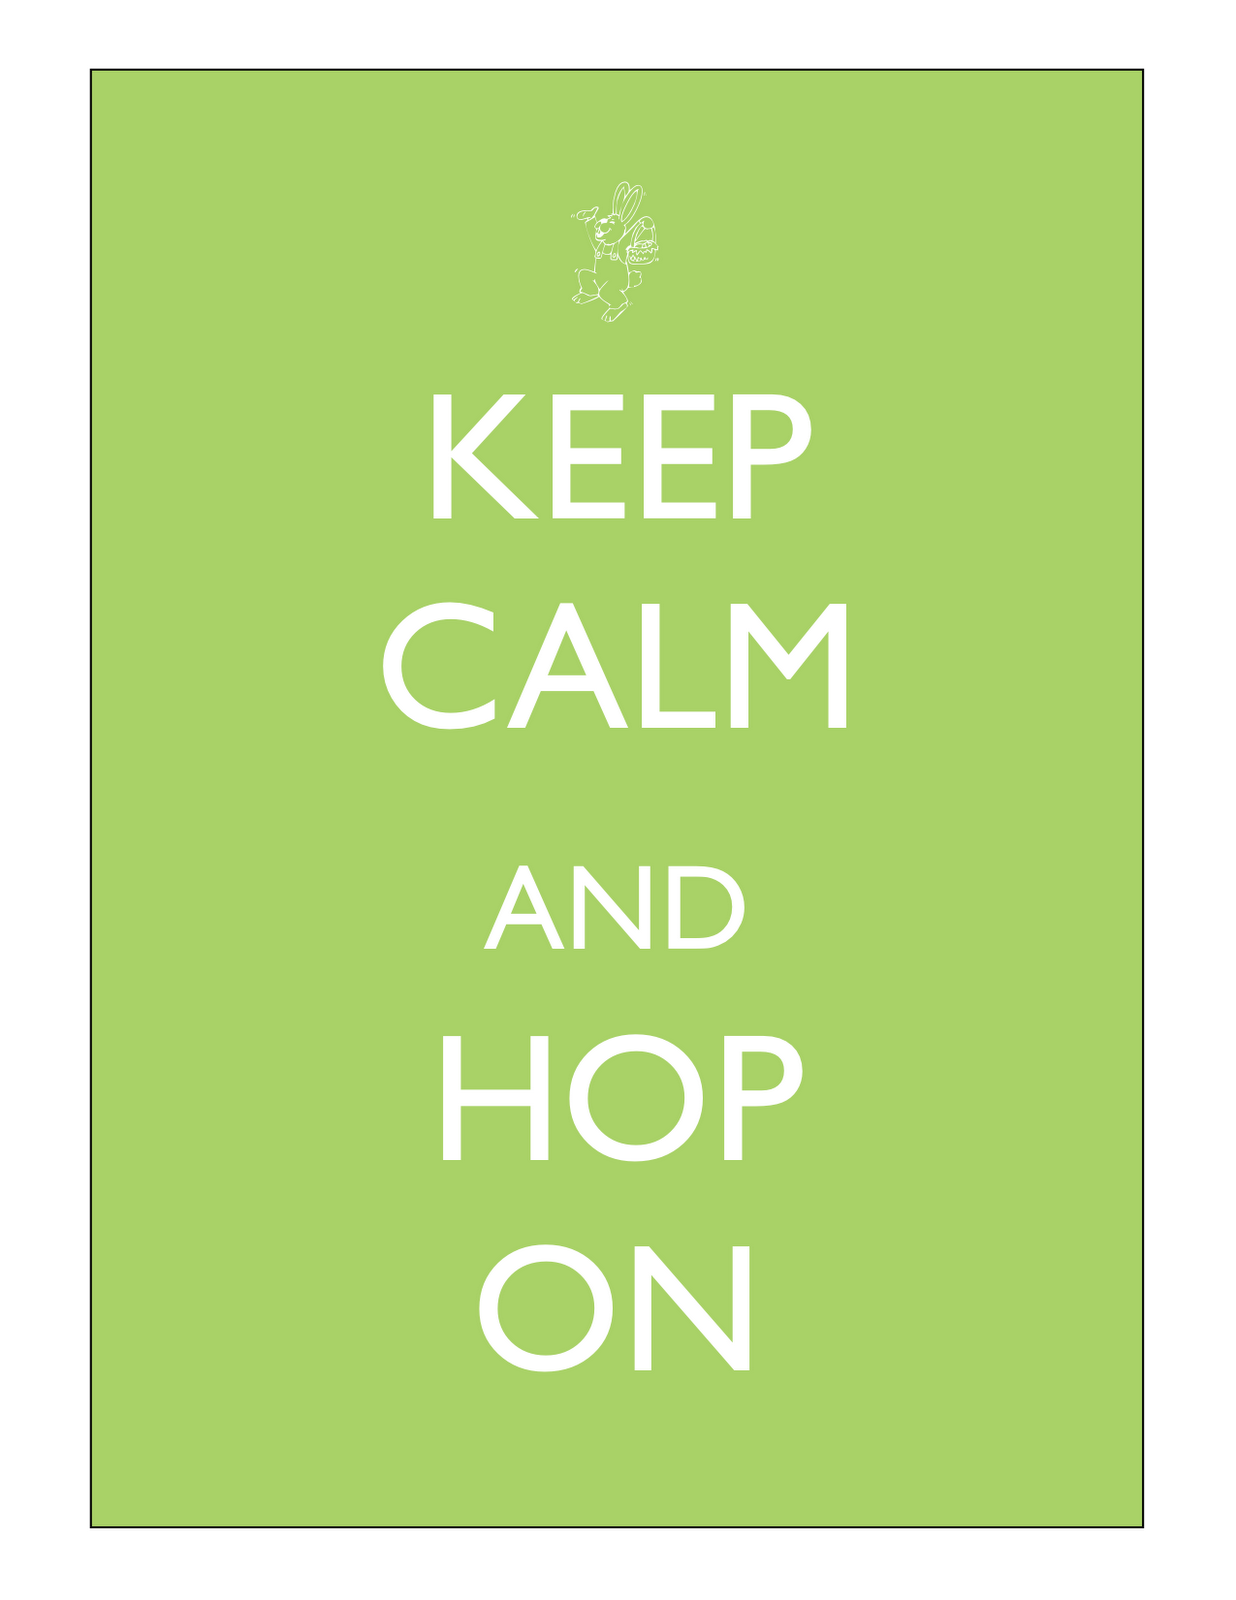 The sweet life studio keep calm and hop on